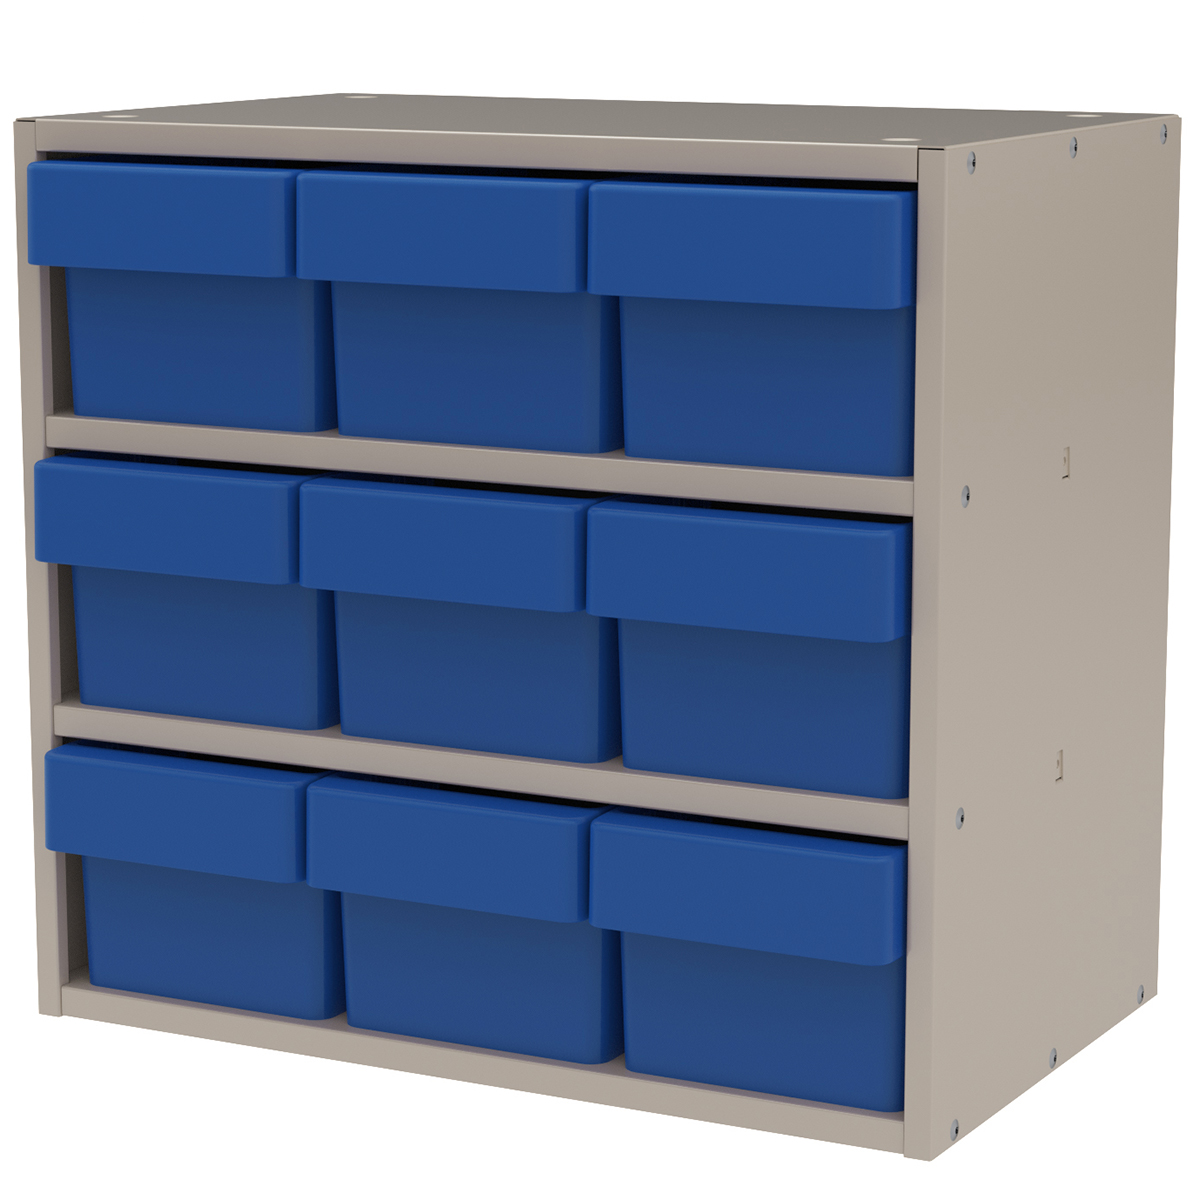 Item DISCONTINUED by Manufacturer.  Modular Cabinet, 18x11x16, 9 Drawers, Putty/Blue (AD1811P62BLU).  This item sold in carton quantities of 1.